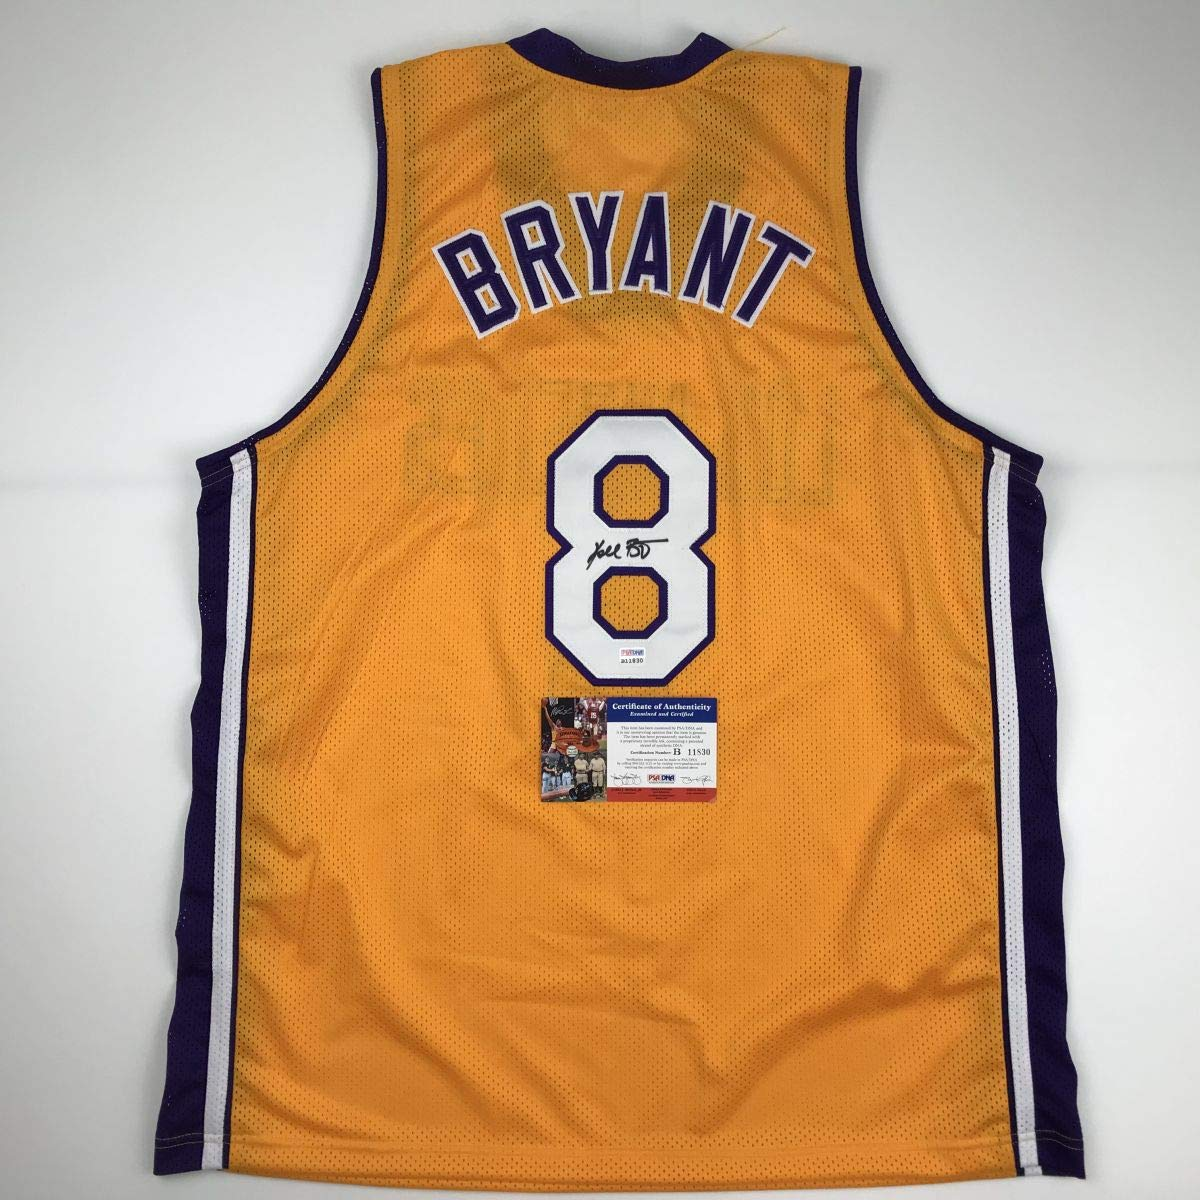 e58cc655656 Autographed/Signed Kobe Bryant #8 Los Angeles Yellow Basketball Jersey  PSA/DNA COA at Amazon's Sports Collectibles Store